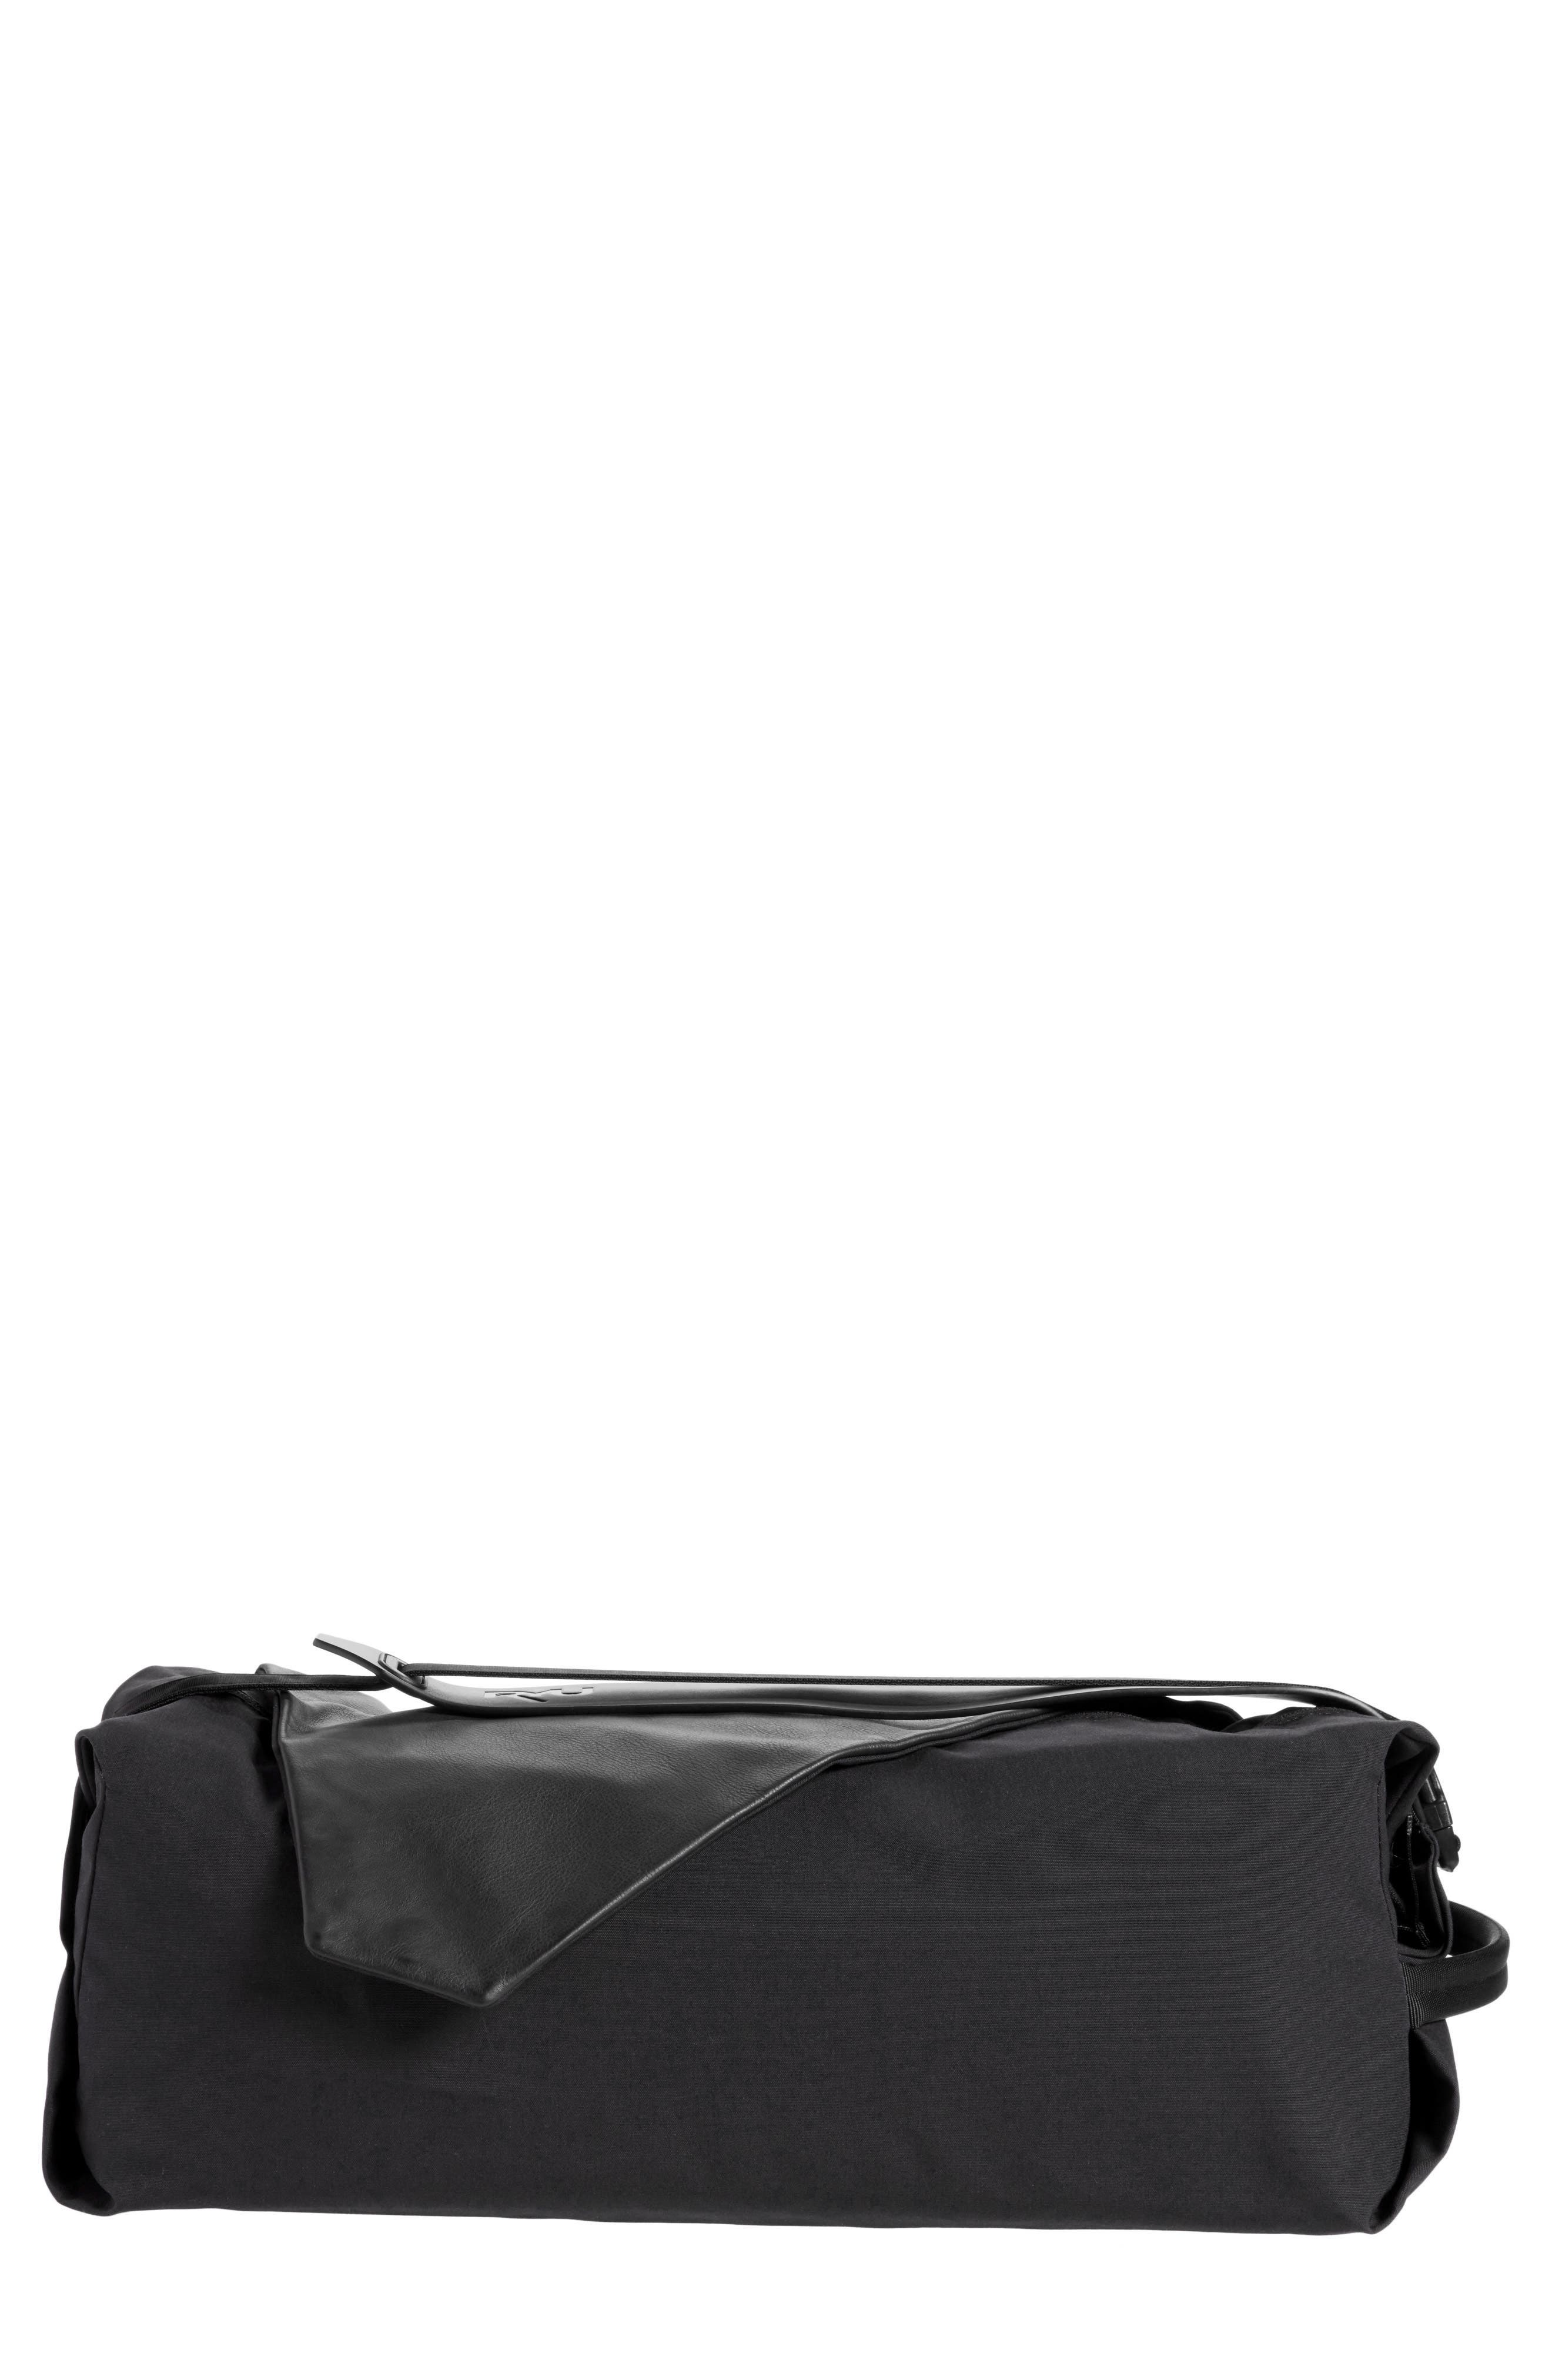 Lux Daily Duffel Bag,                         Main,                         color, 001